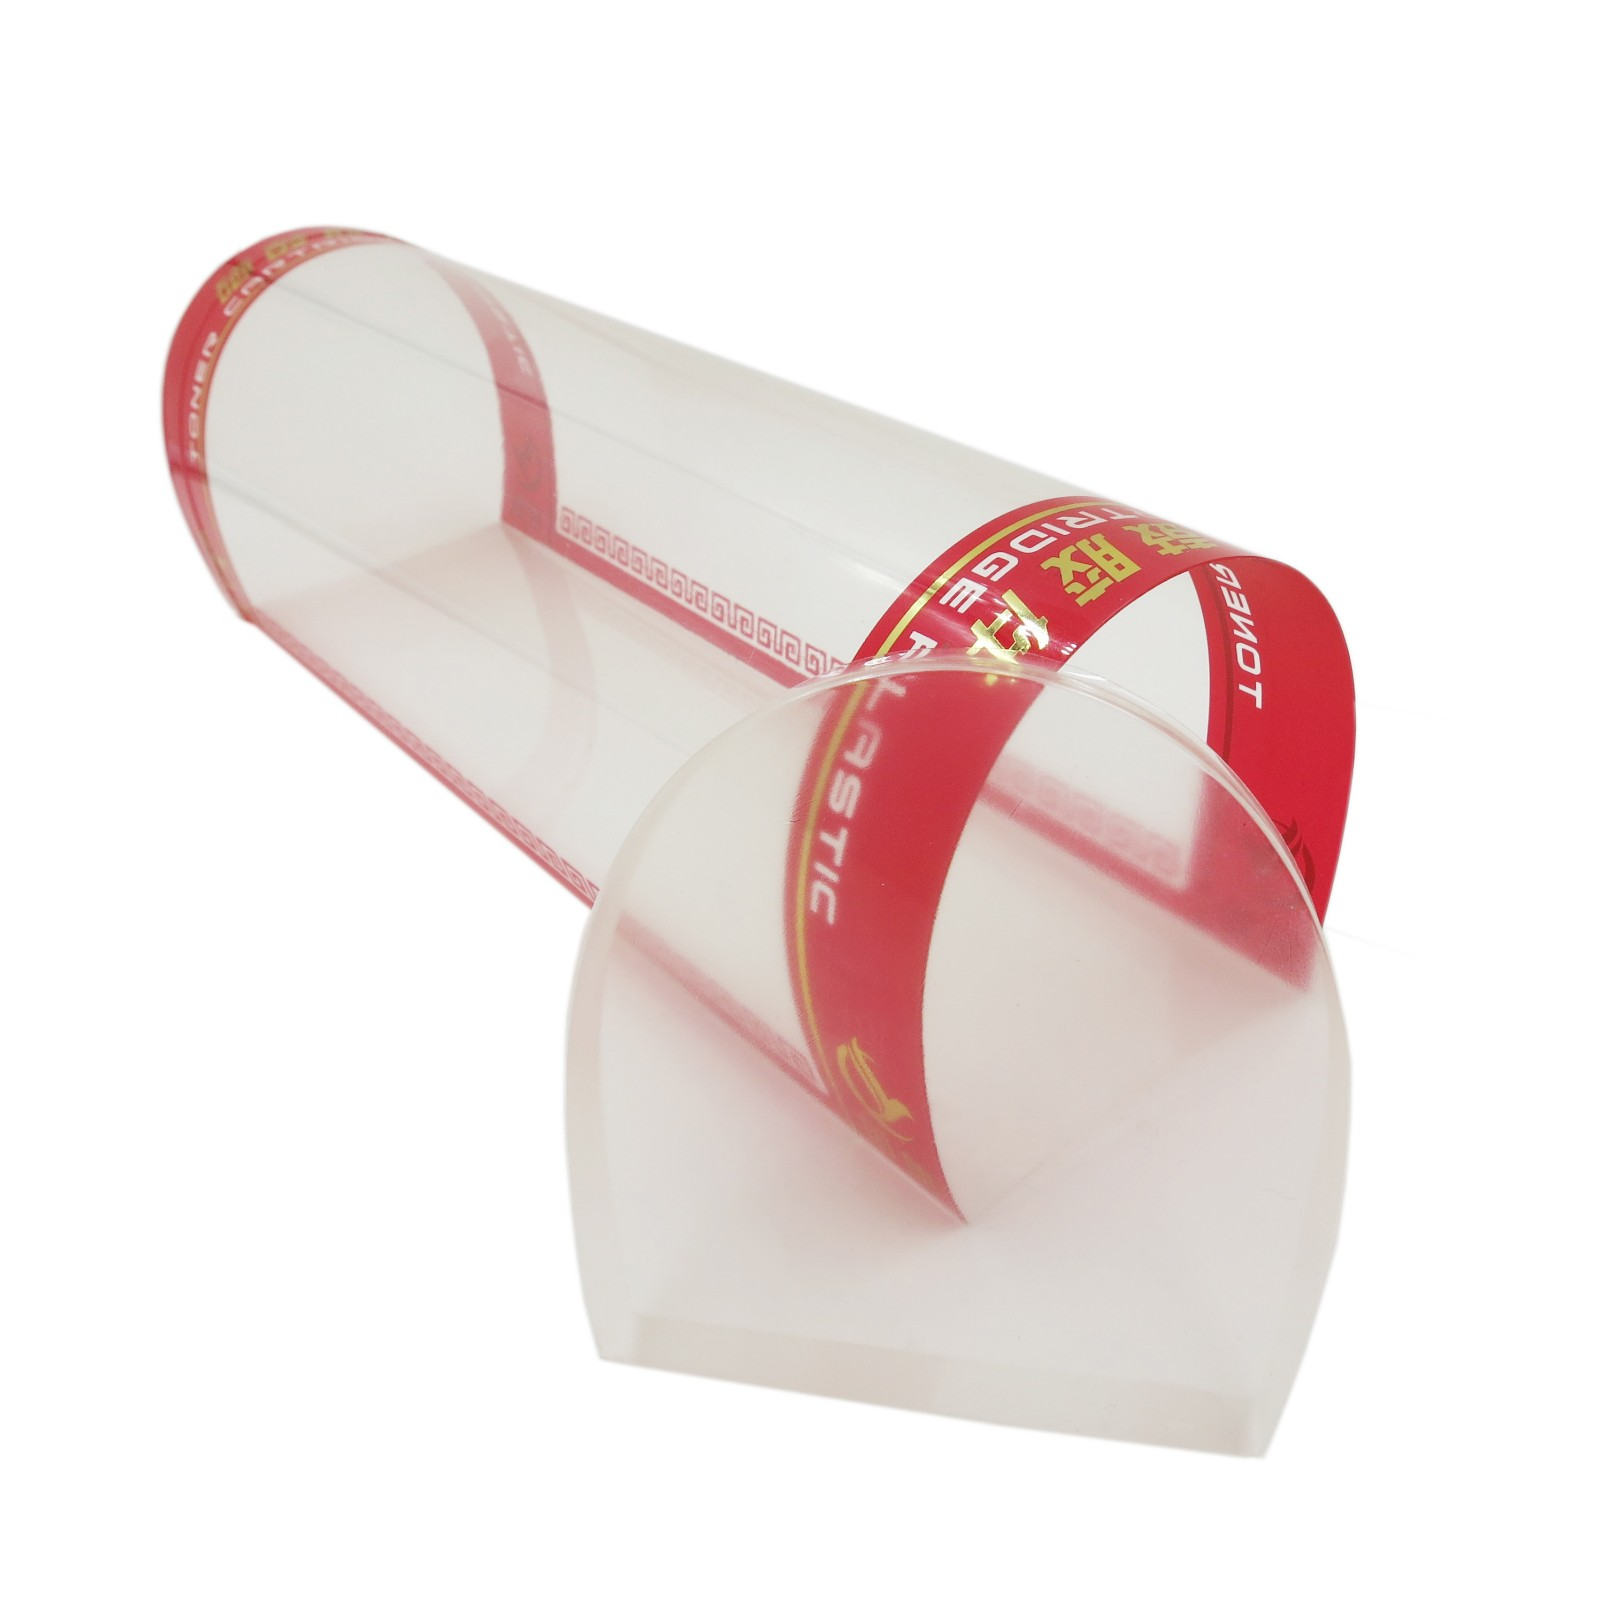 new-arrival clear plastic containers cap long-term-use for change-3